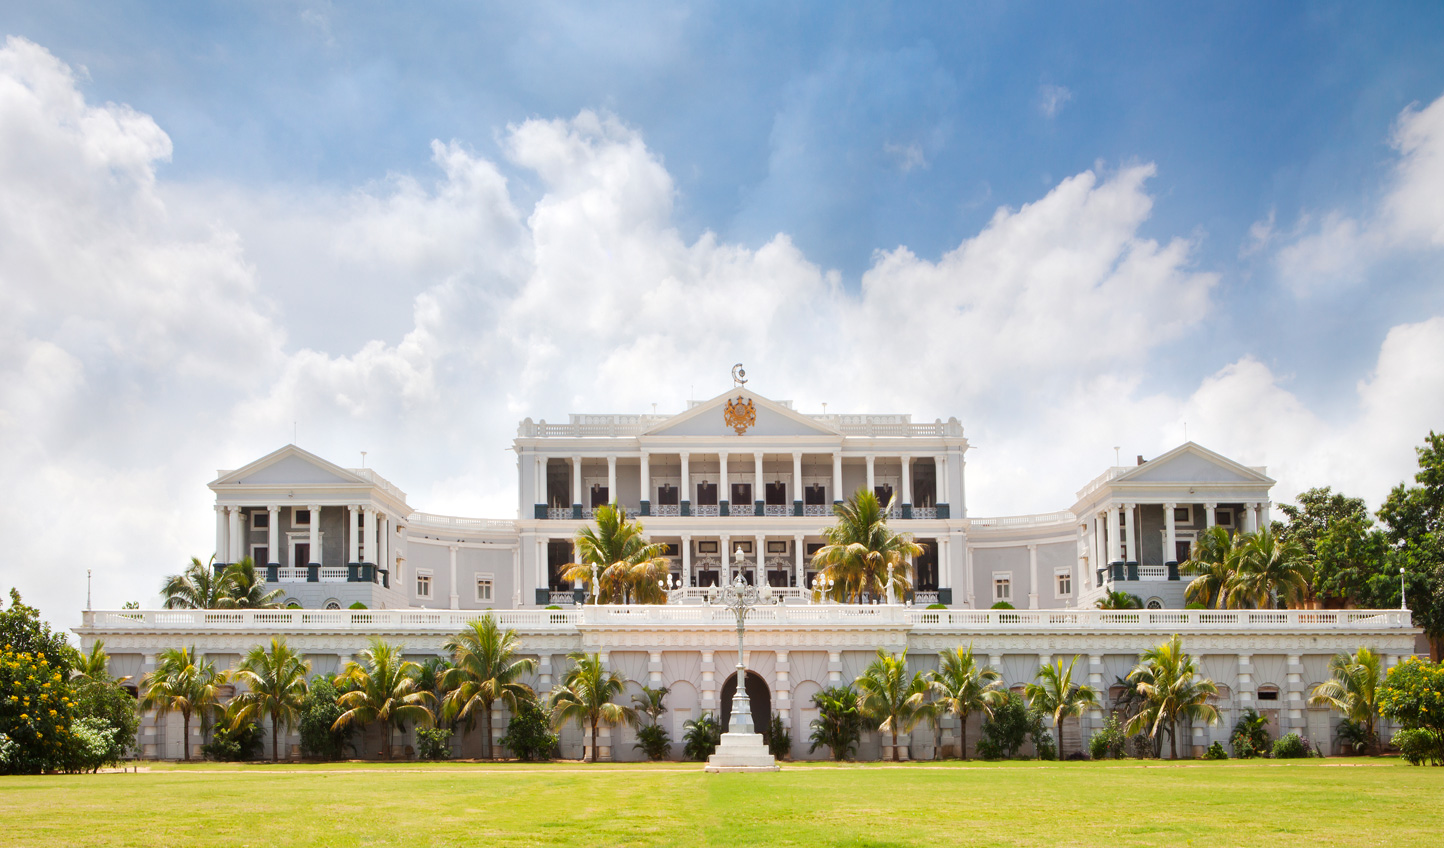 Retreat to your royal abode at Taj Falaknuma Palace